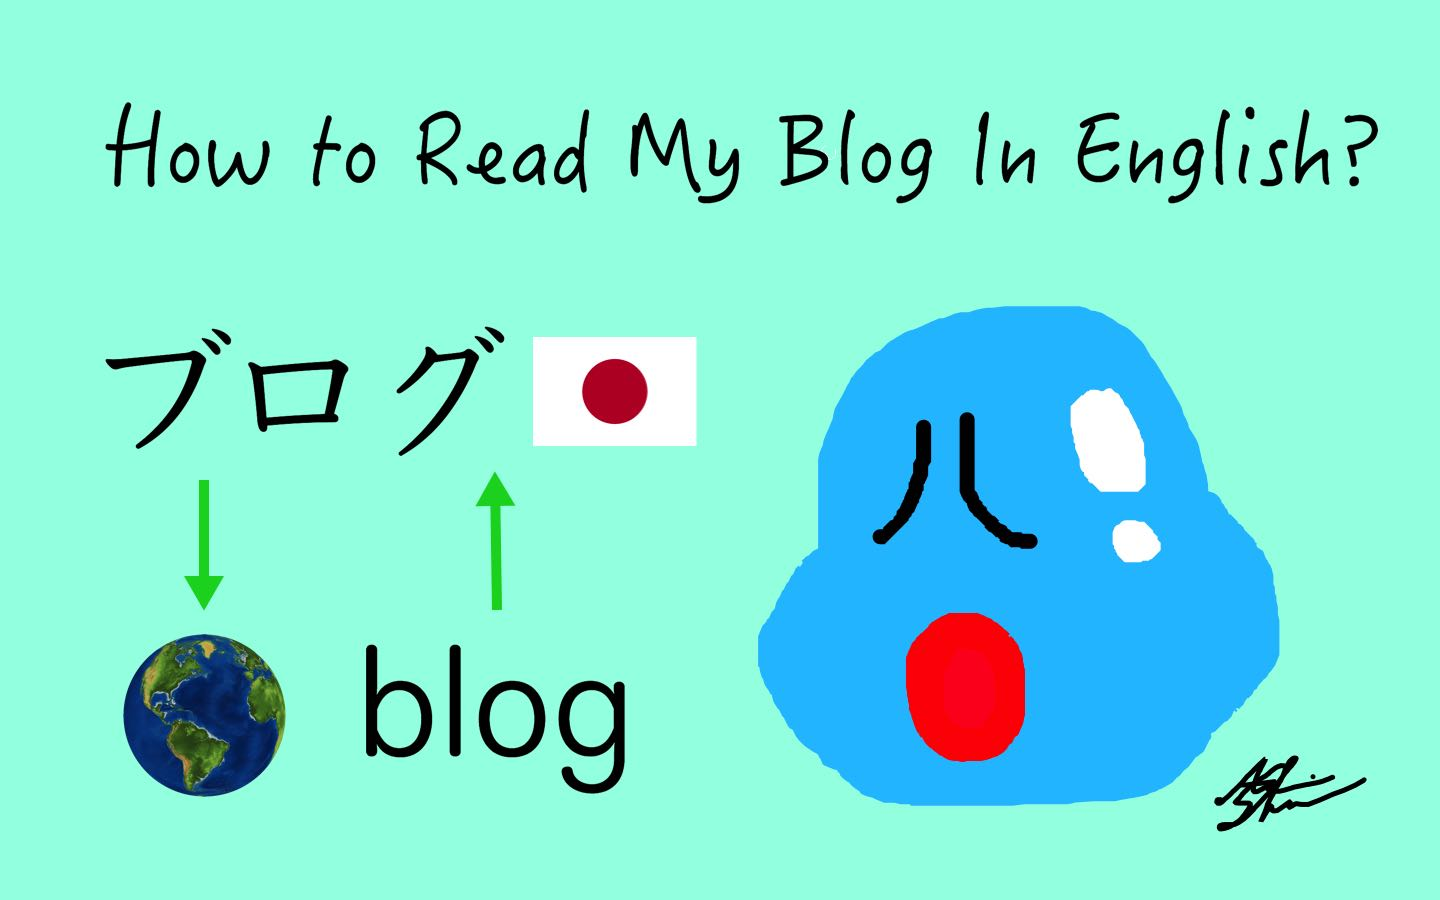 How to Read My Blog in English?